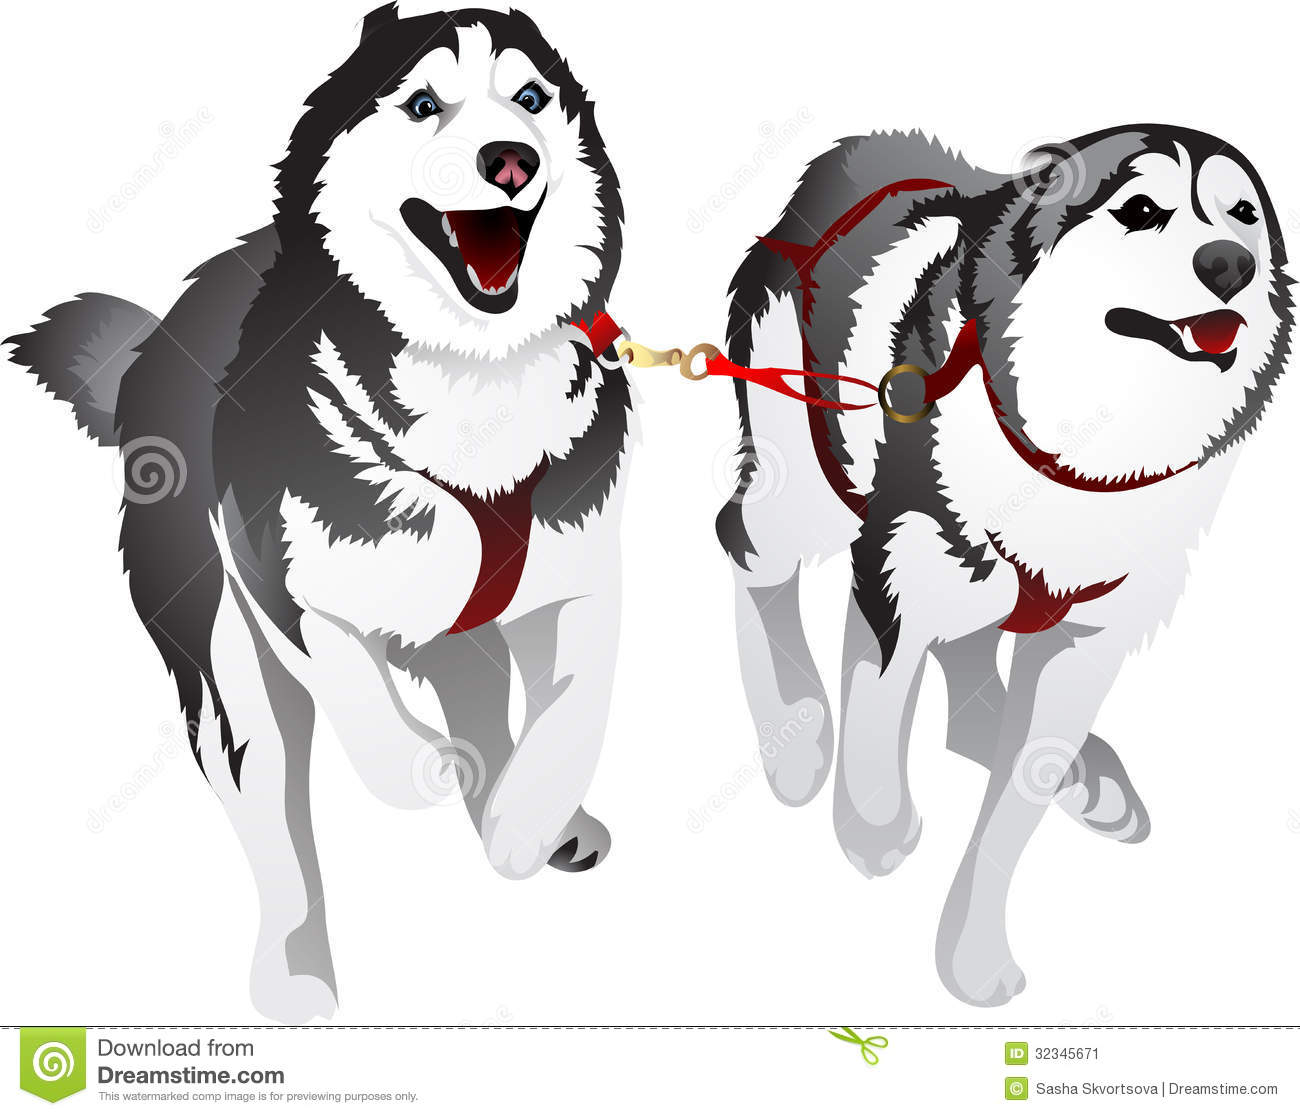 Husky Sled Race In The Sport For Speed Stock Image - Image: 32345671